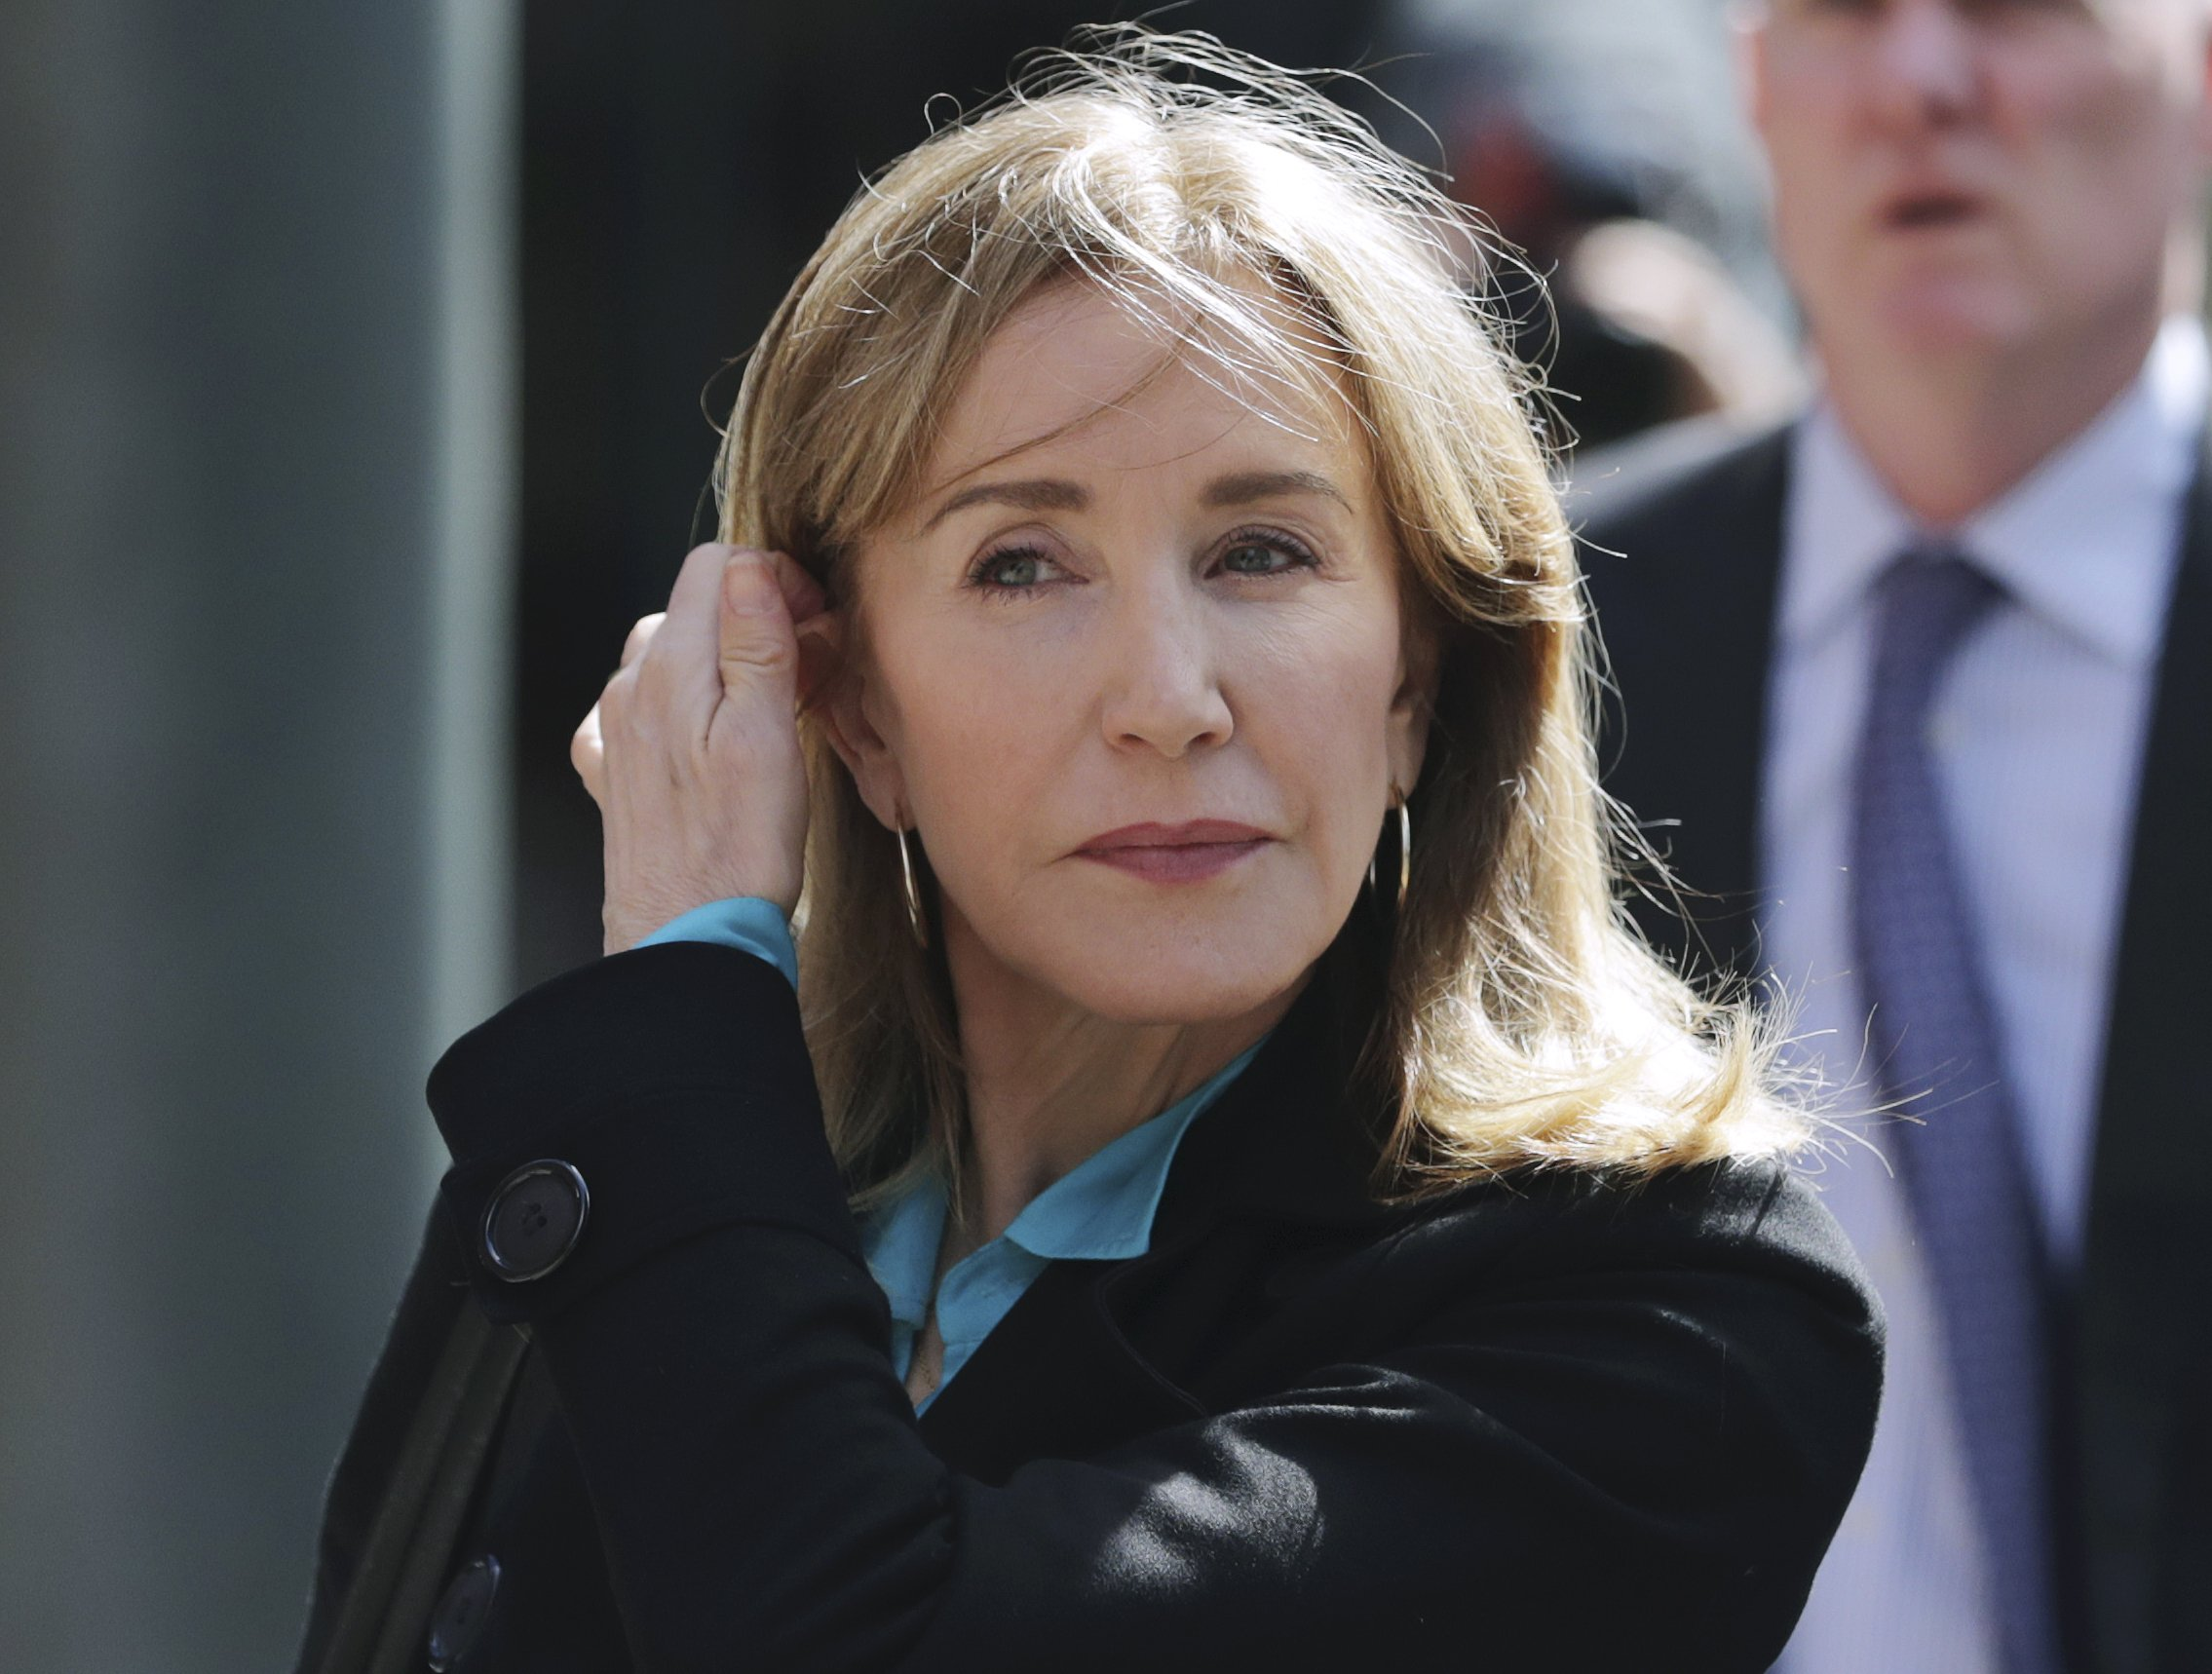 Felicity Huffman to plead guilty in college admissions scam